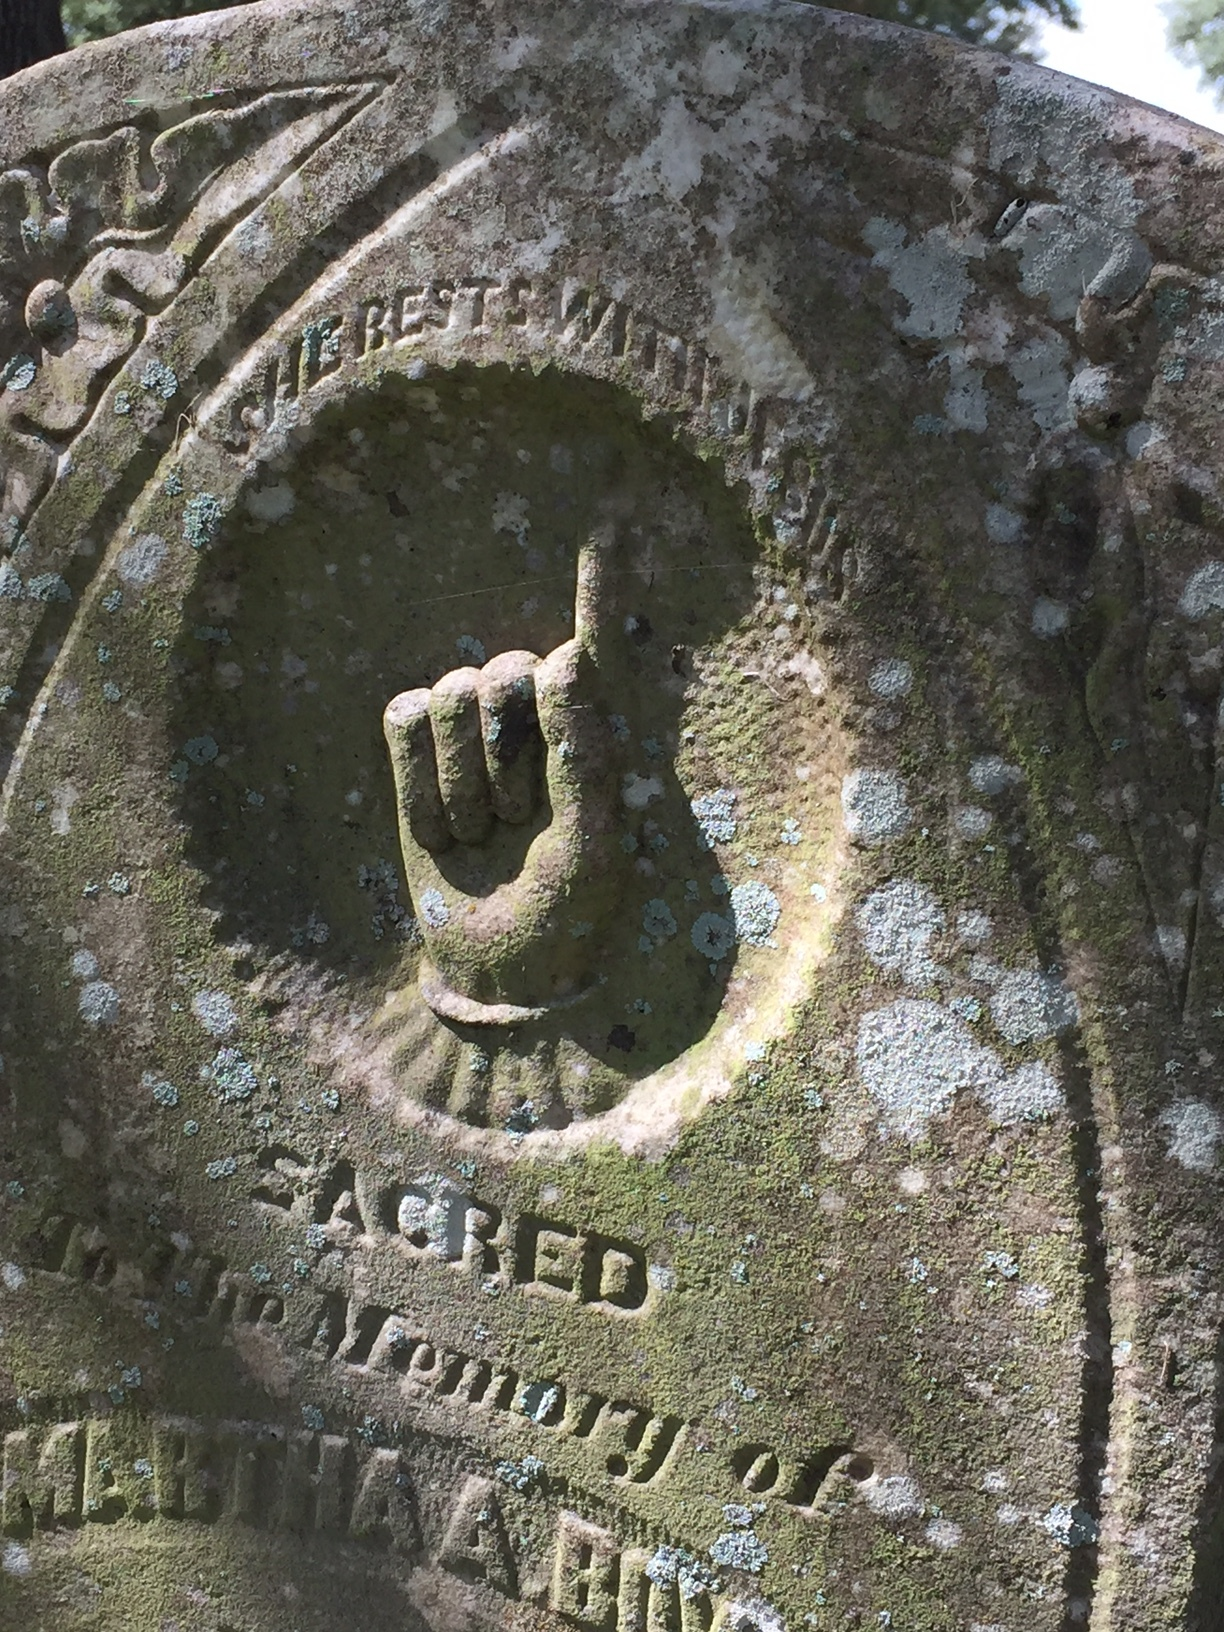 The hand pointing upward as a symbol for heaven is a common one found throughout the cemetery